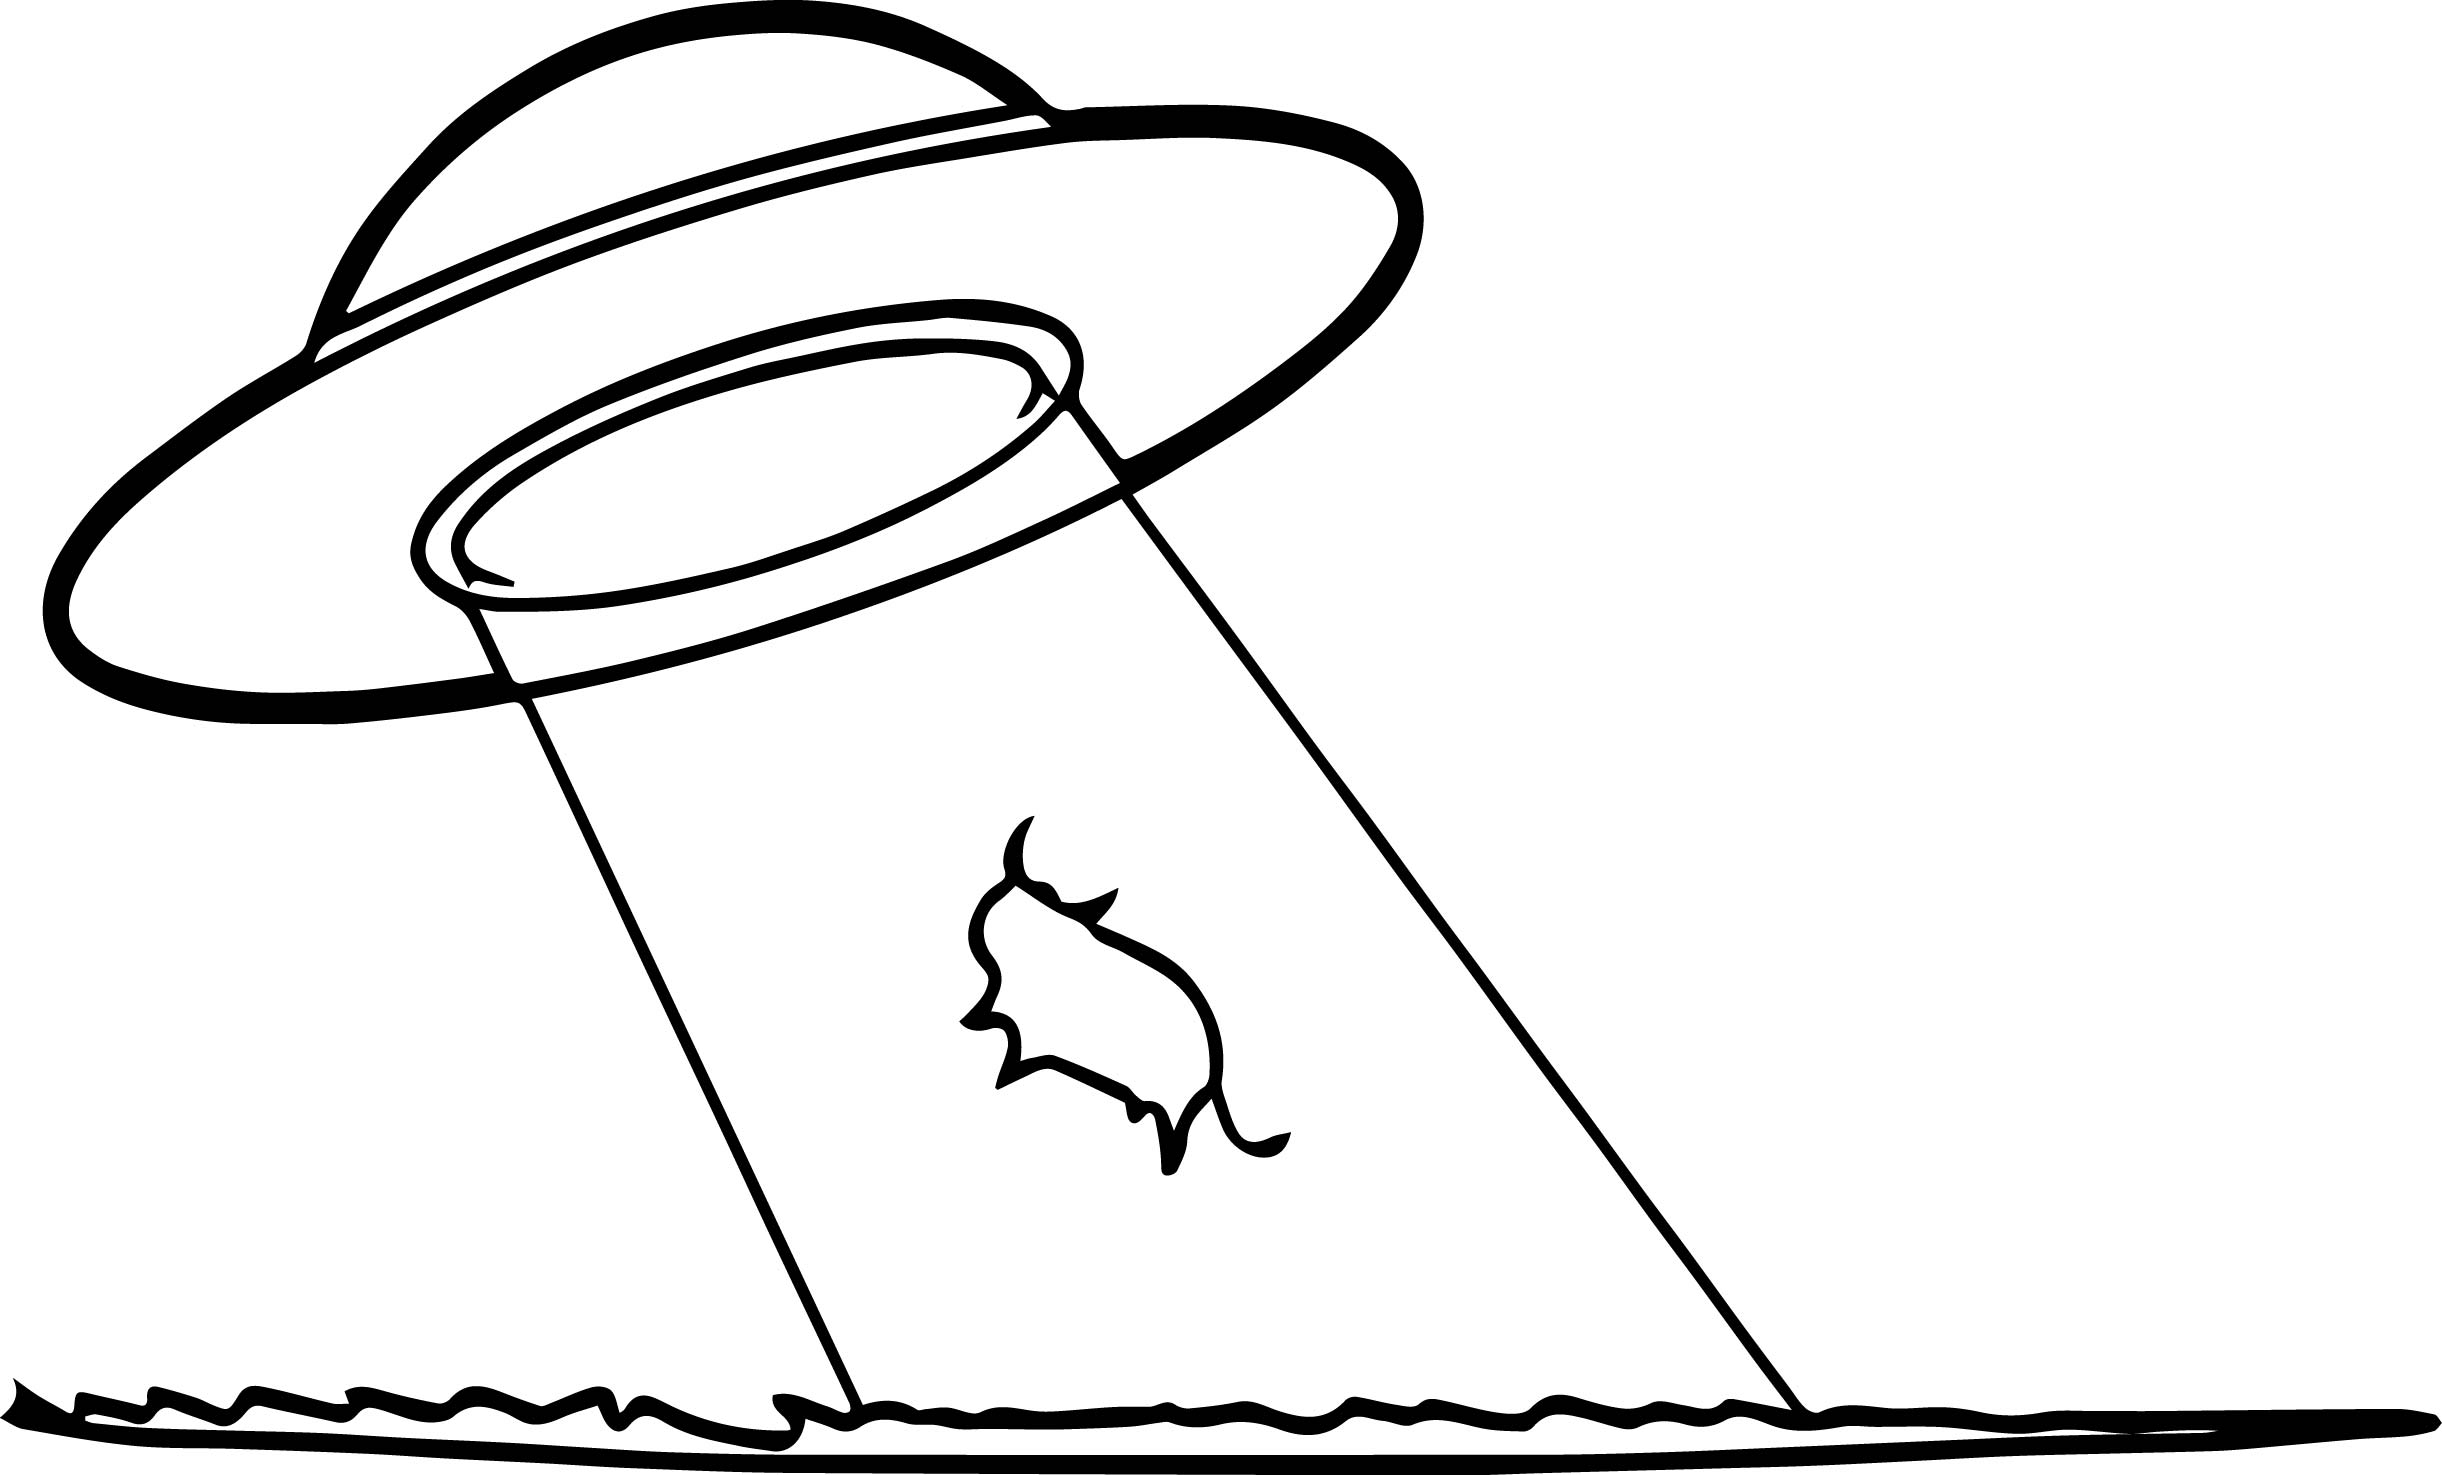 cow abduction coloring page wecoloringpage